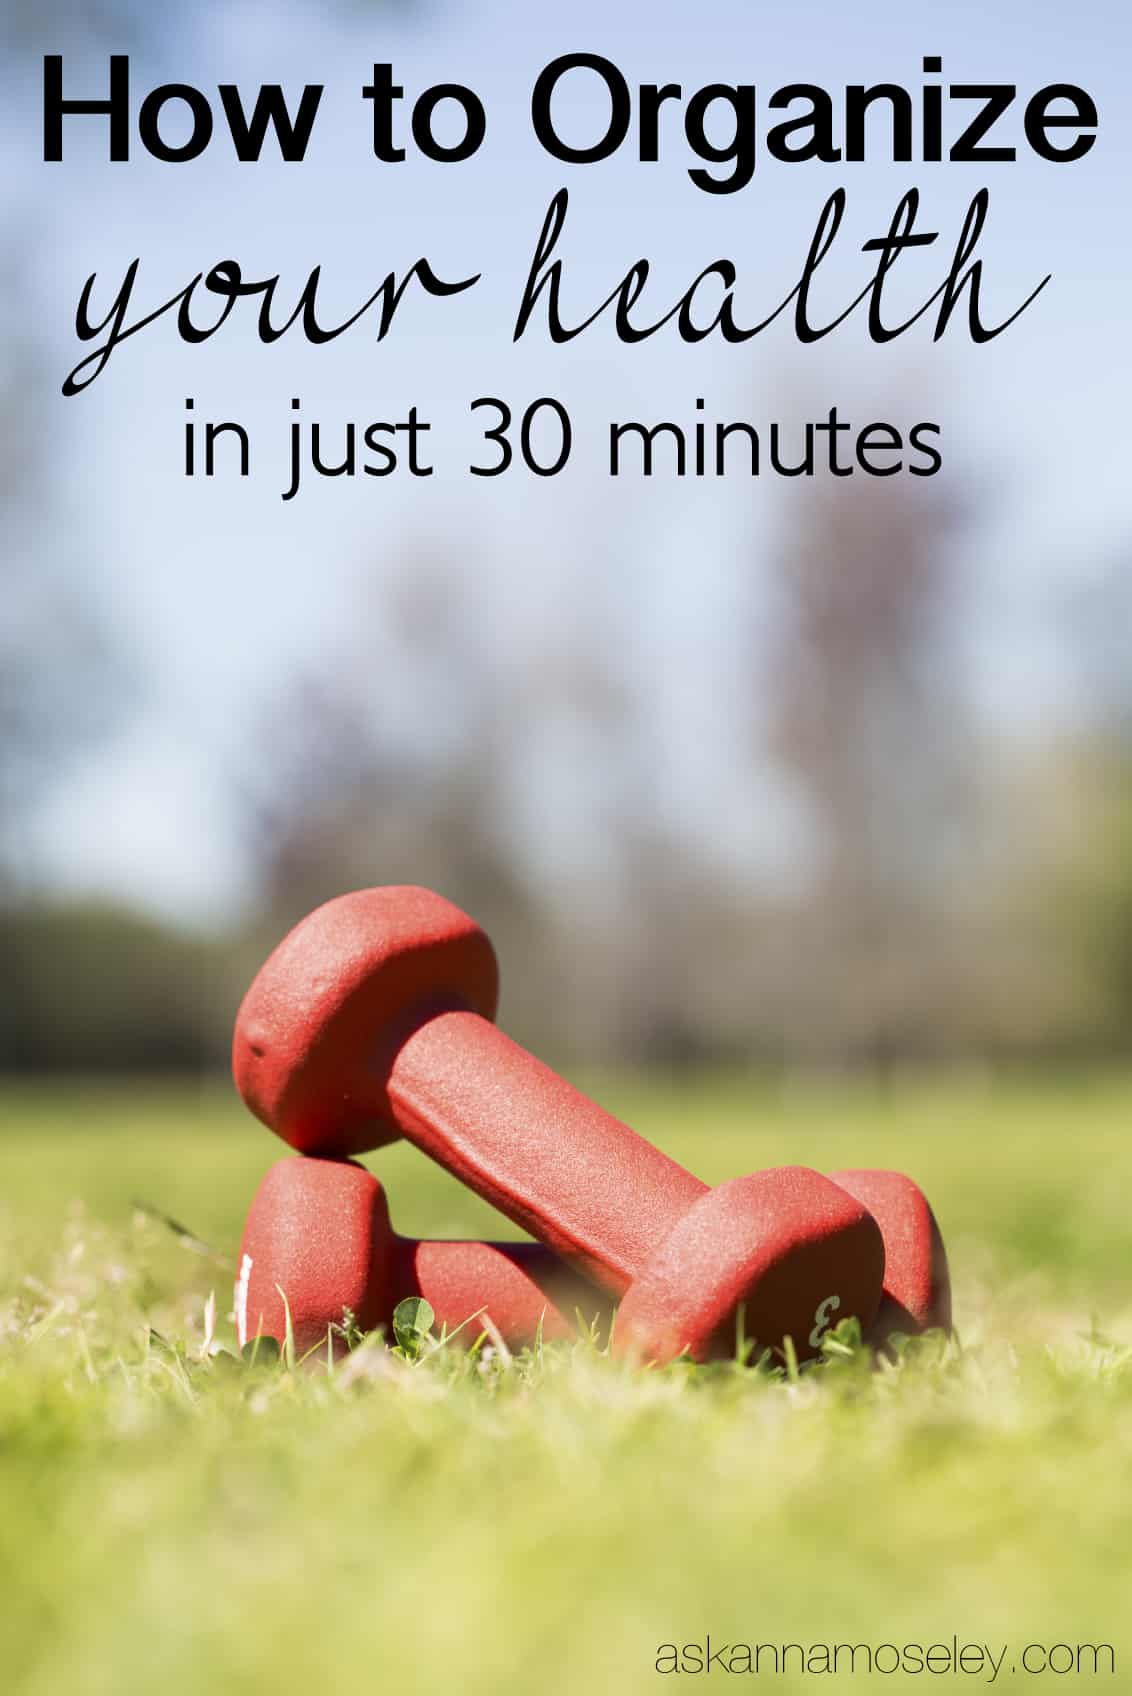 How to organize your health in 30 minutes, and change your life forever | Ask Anna